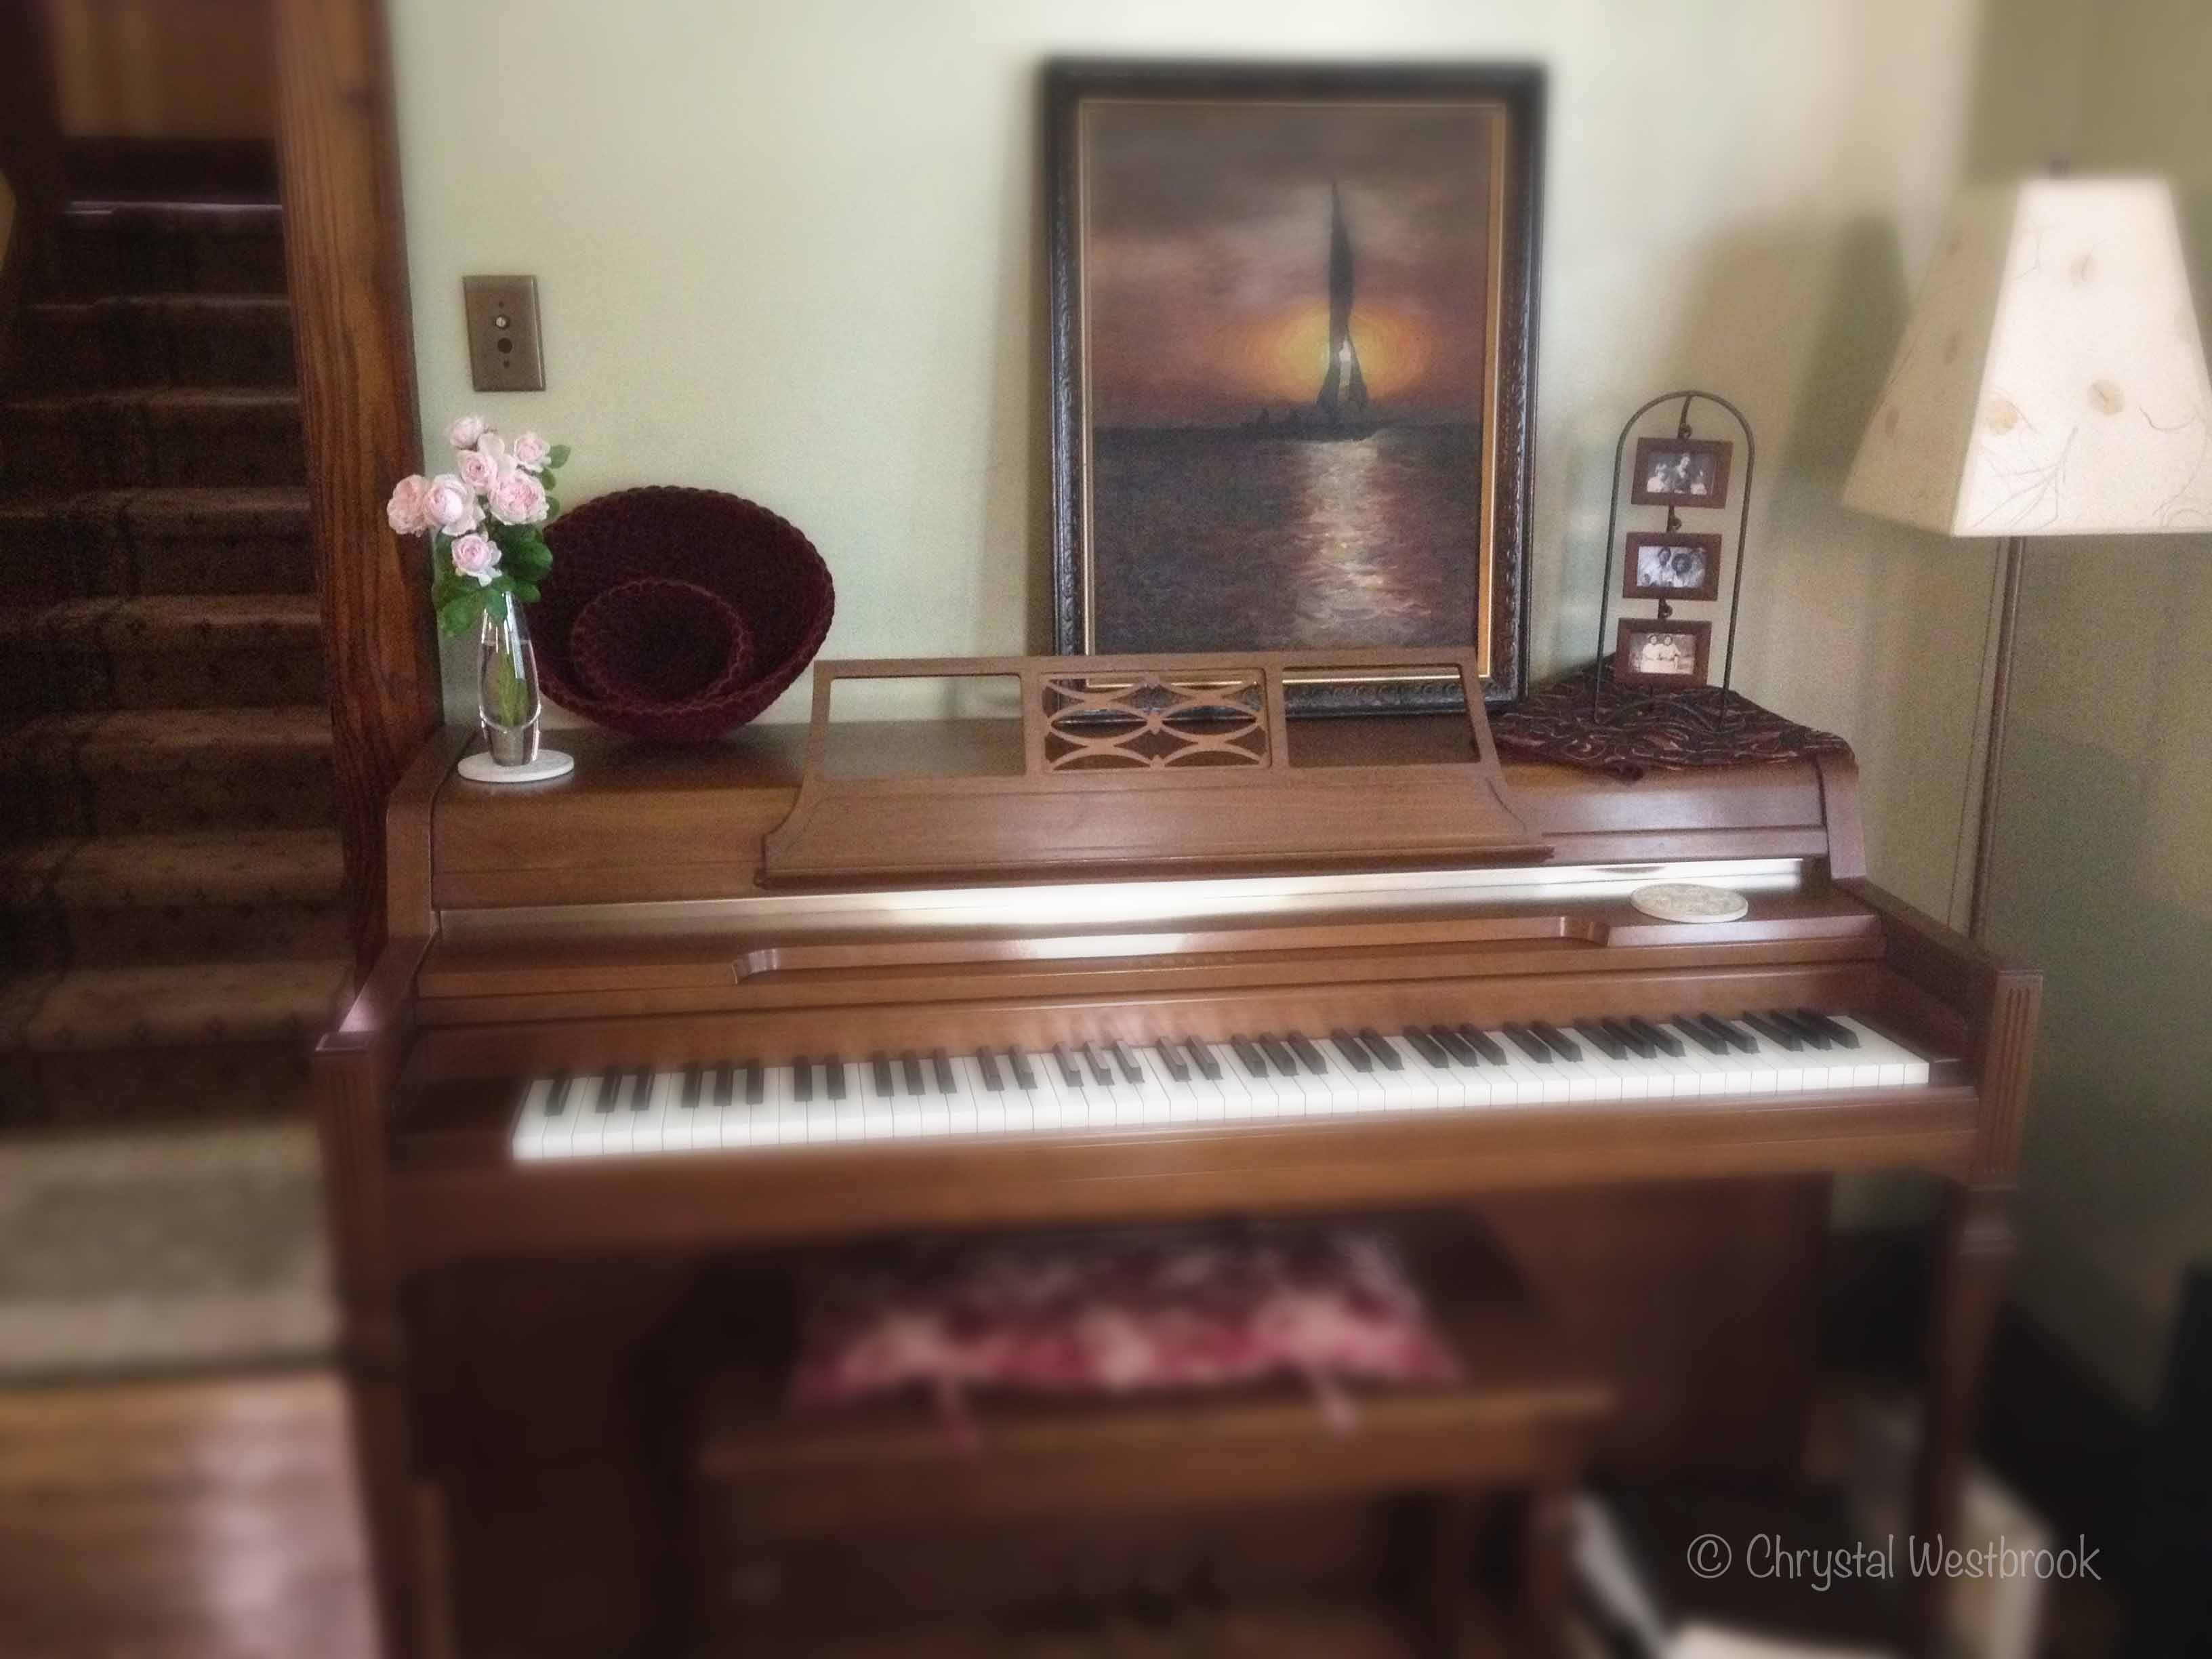 [IMAGE] spinet piano with a vase of roses